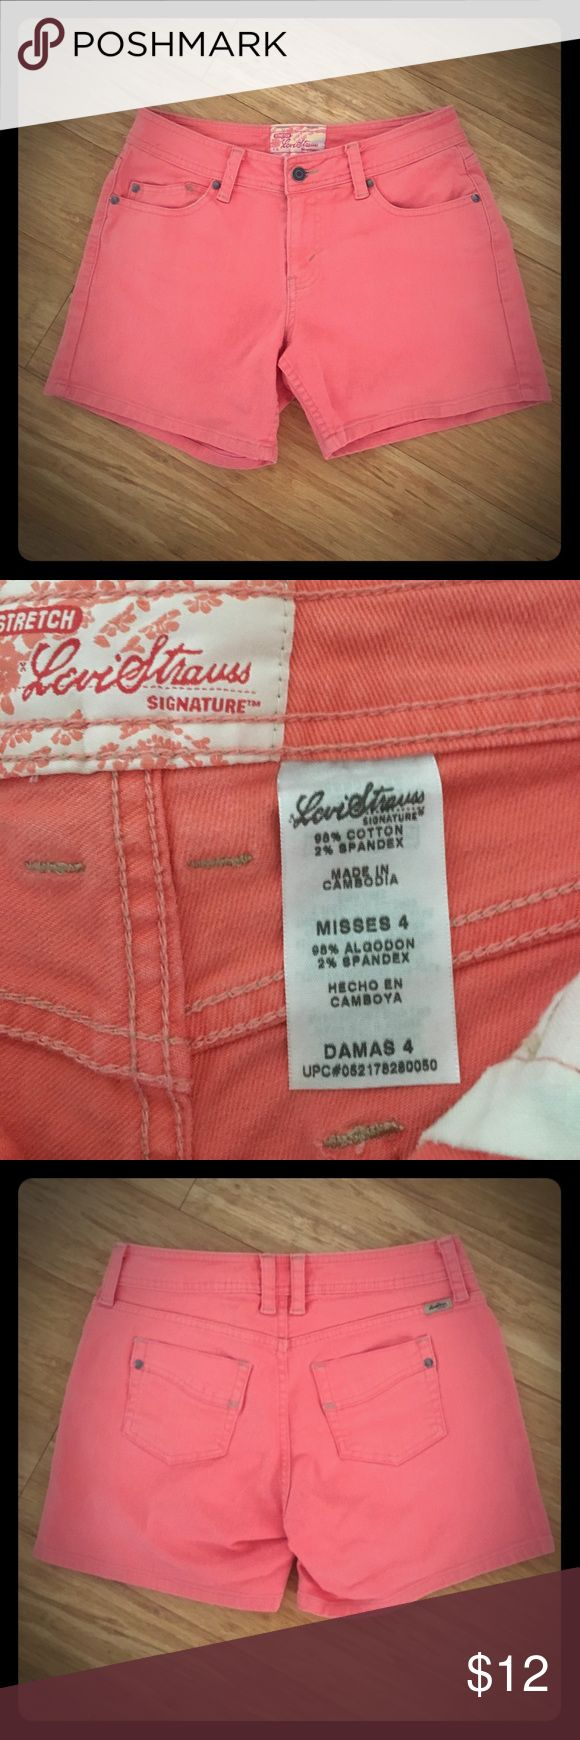 Levi Strauss Signature STRETCH peachy jean shorts Levi Strauss Signature STRETCH peachy jean shorts, size 4, great condition and great color, material still has a crispness to it, look almost new to me Levi's Shorts Jean Shorts